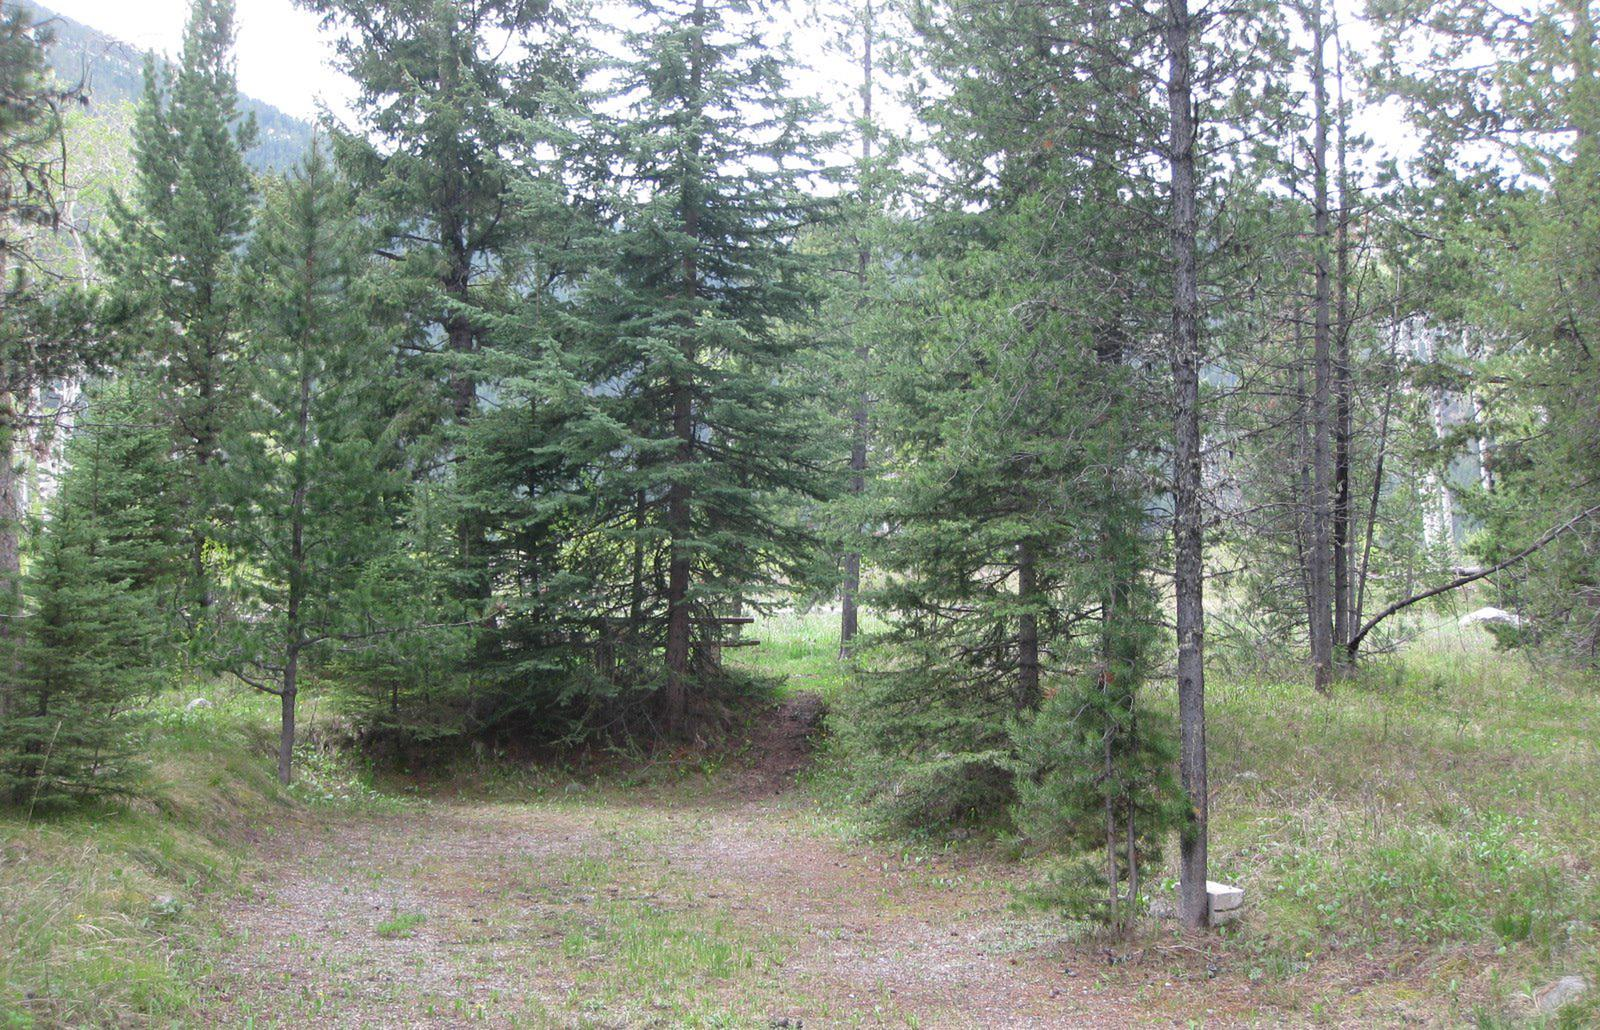 Site C2, campsite surrounded by pine trees, picnic table & fire ringSite C2